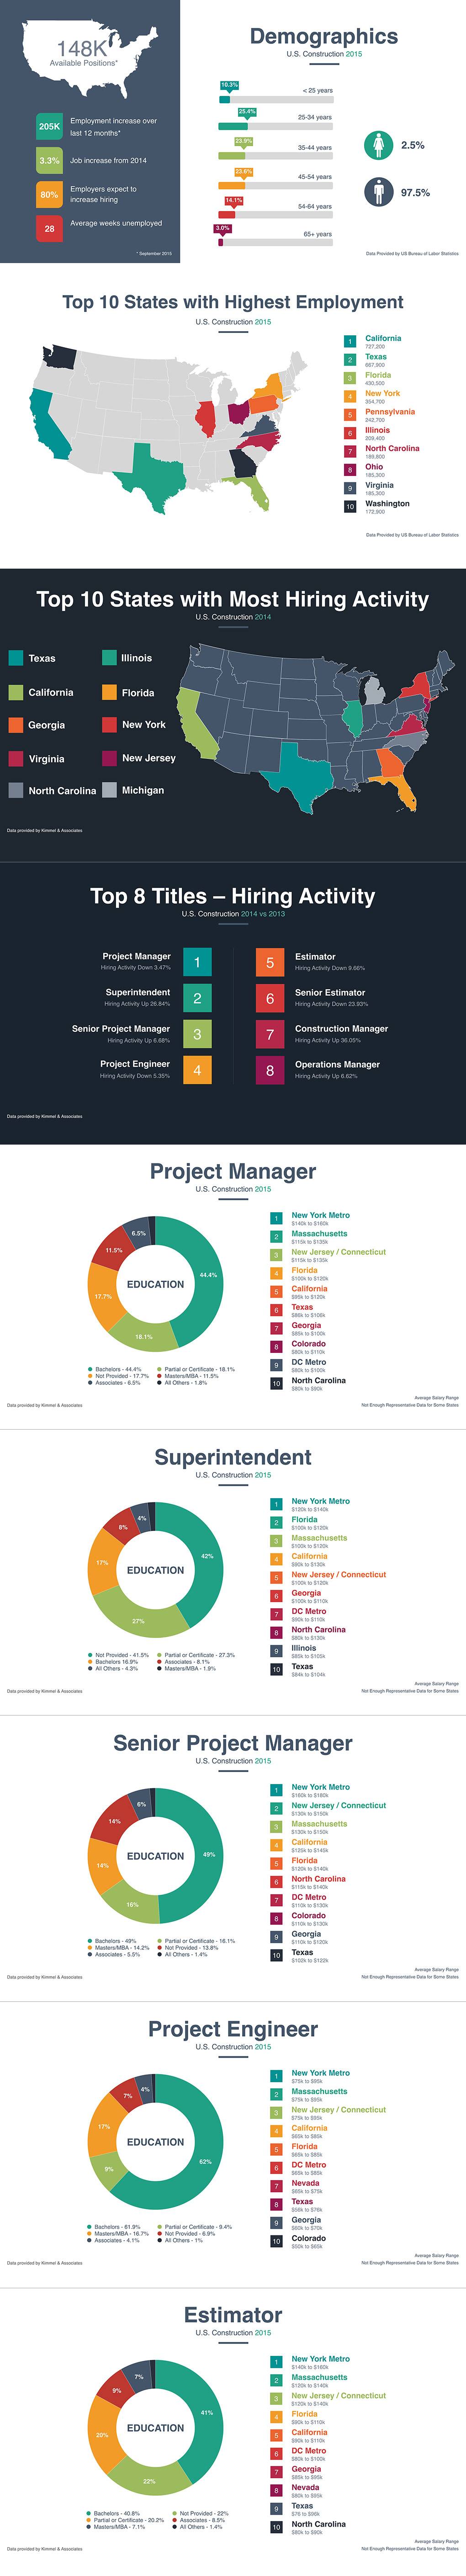 Construction Salary Infographic 2015